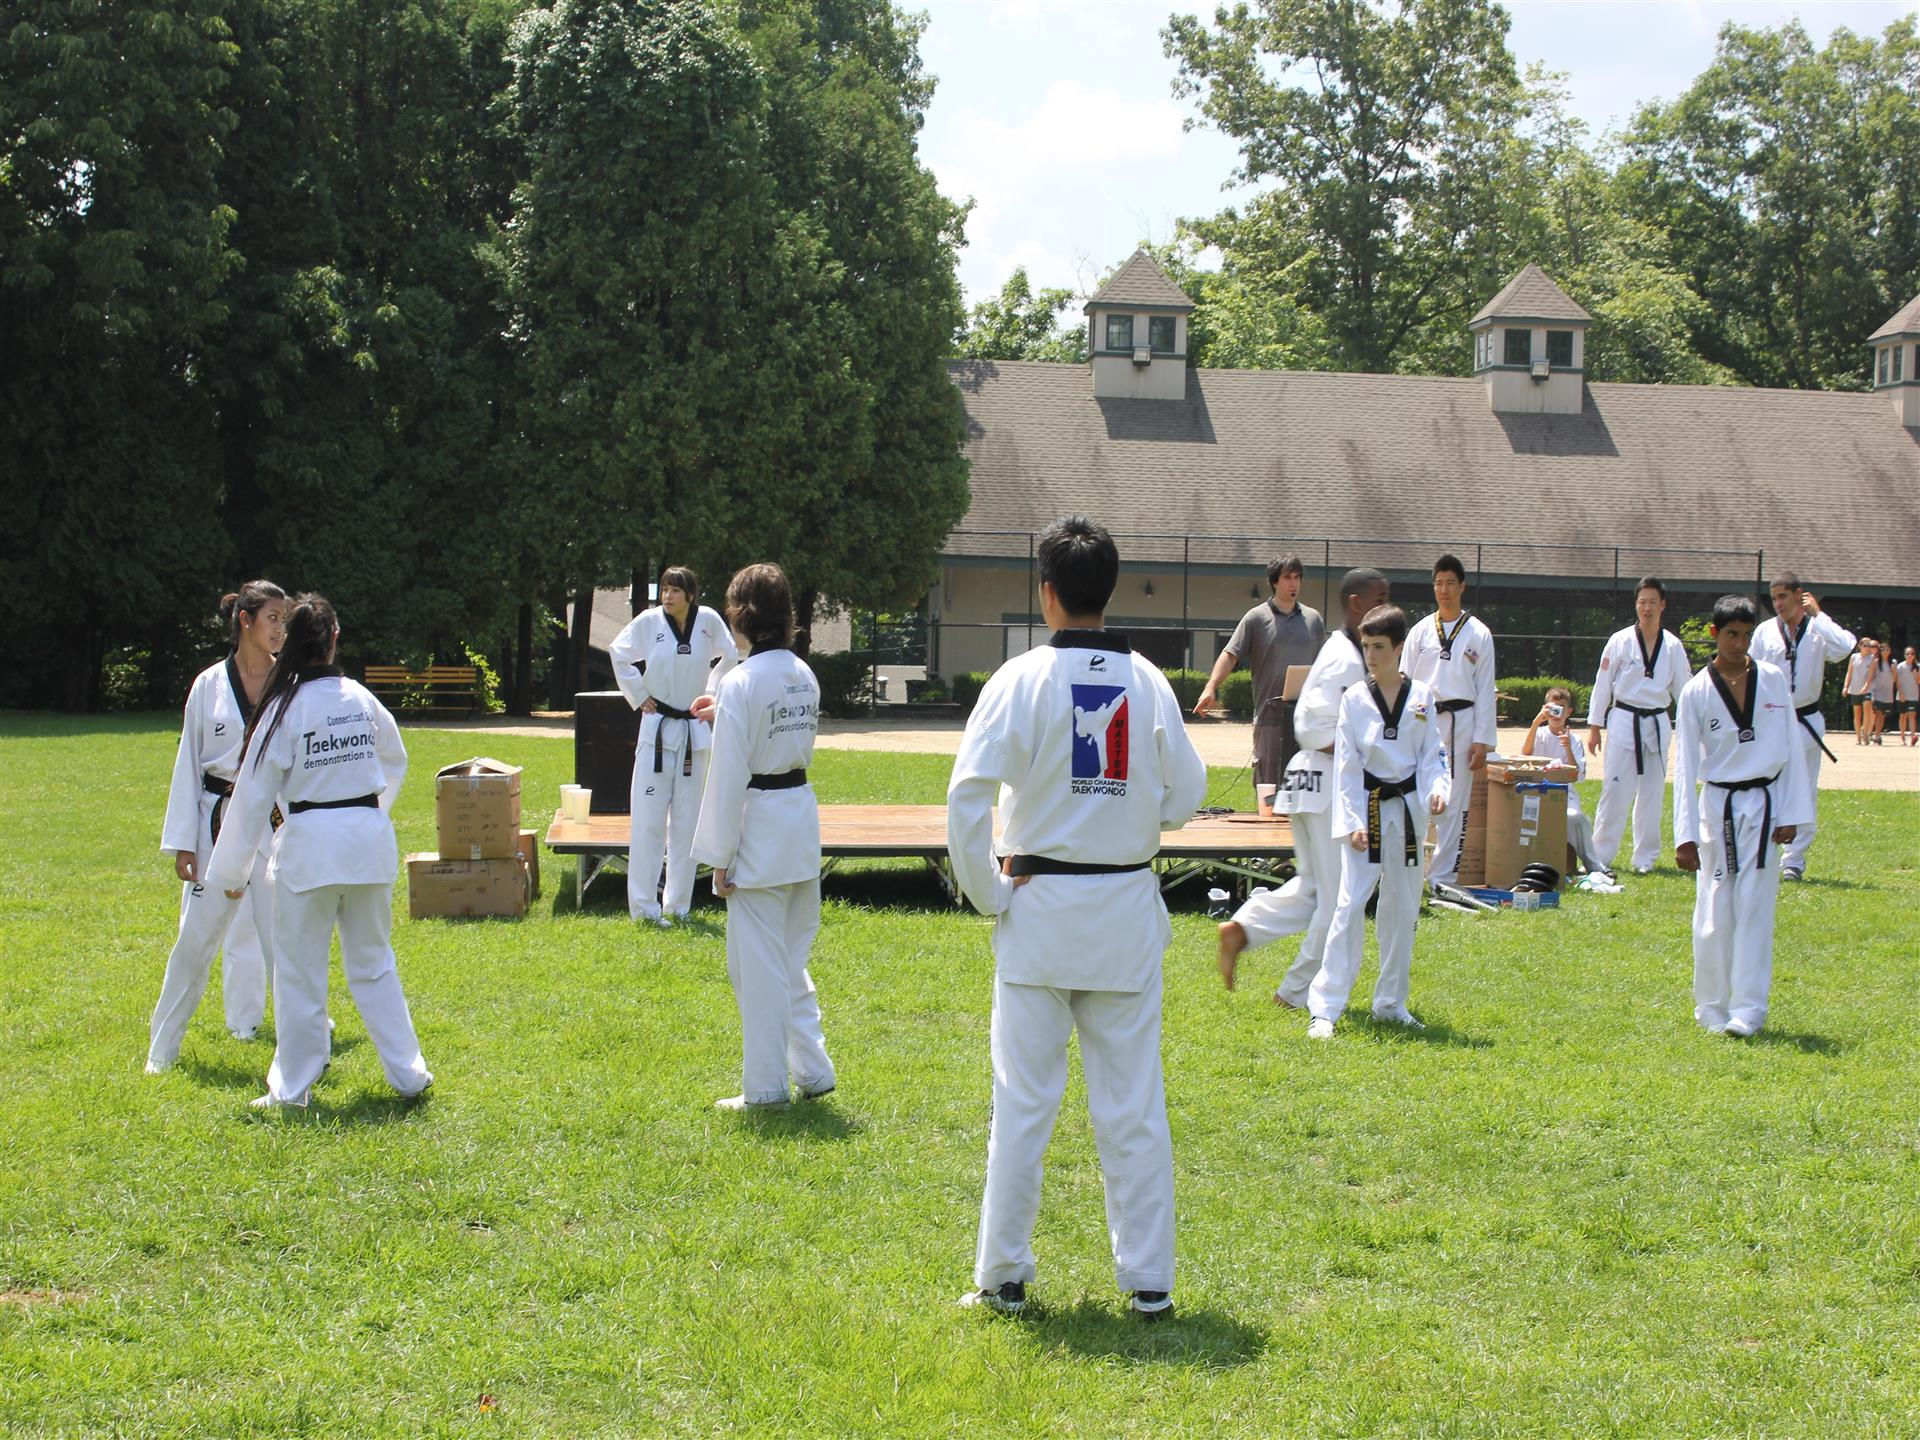 campers doing karate